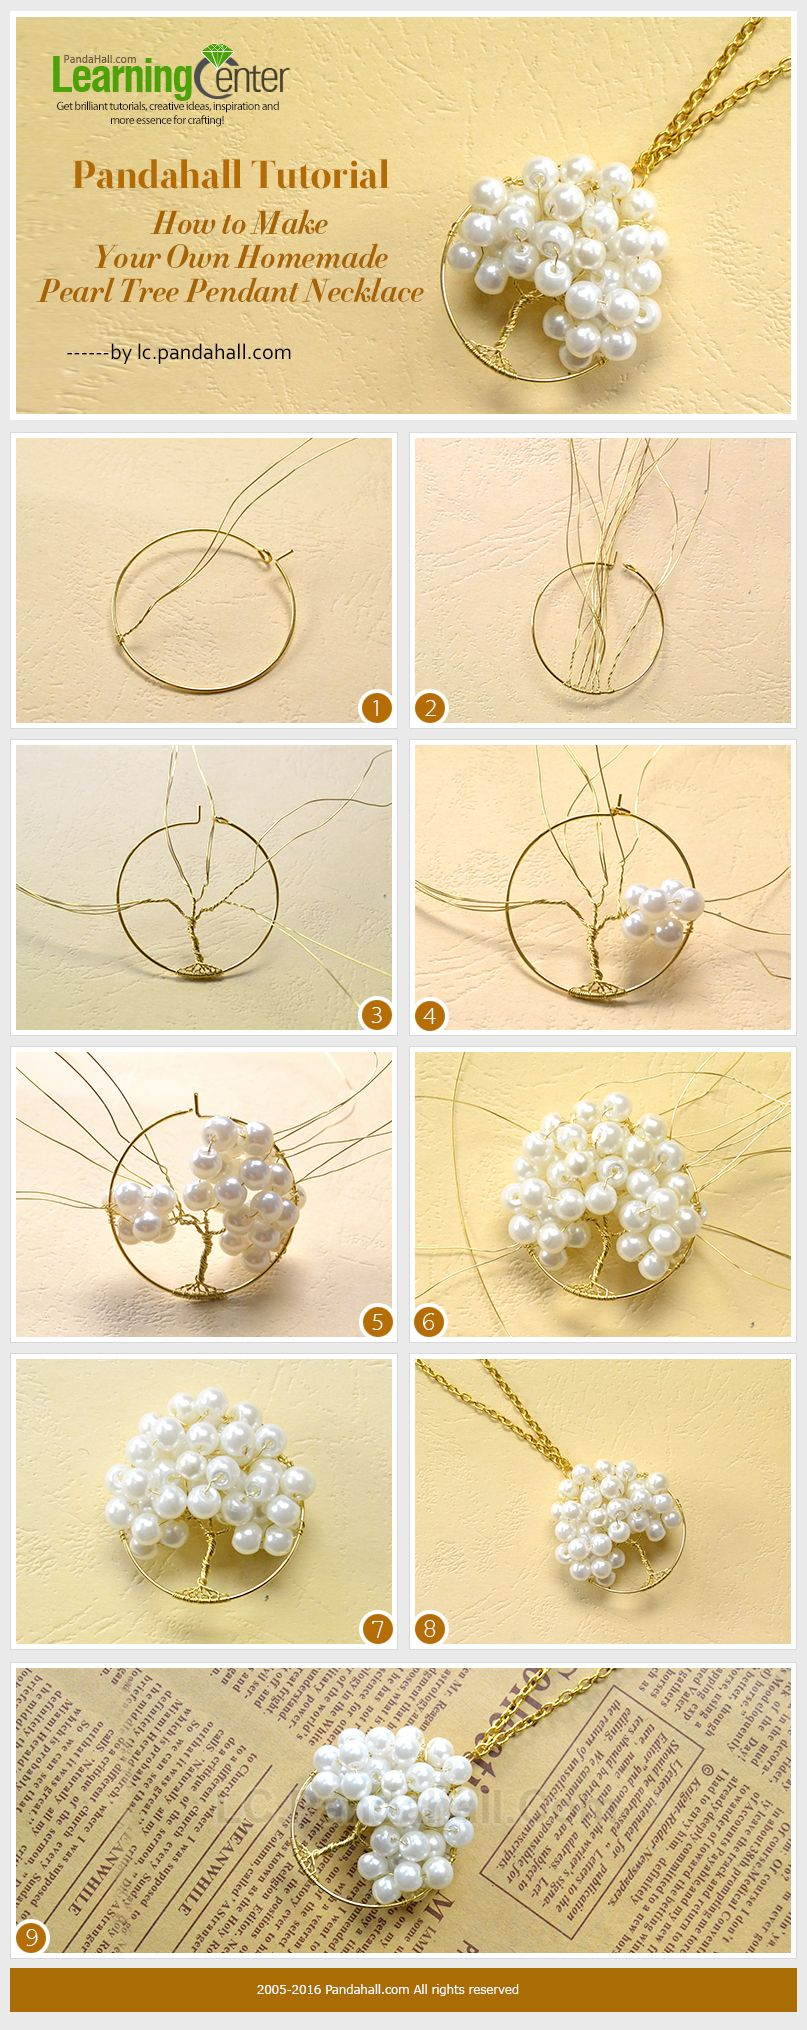 How To Make Your Own Homemade Pearl Tree Pendant Necklace